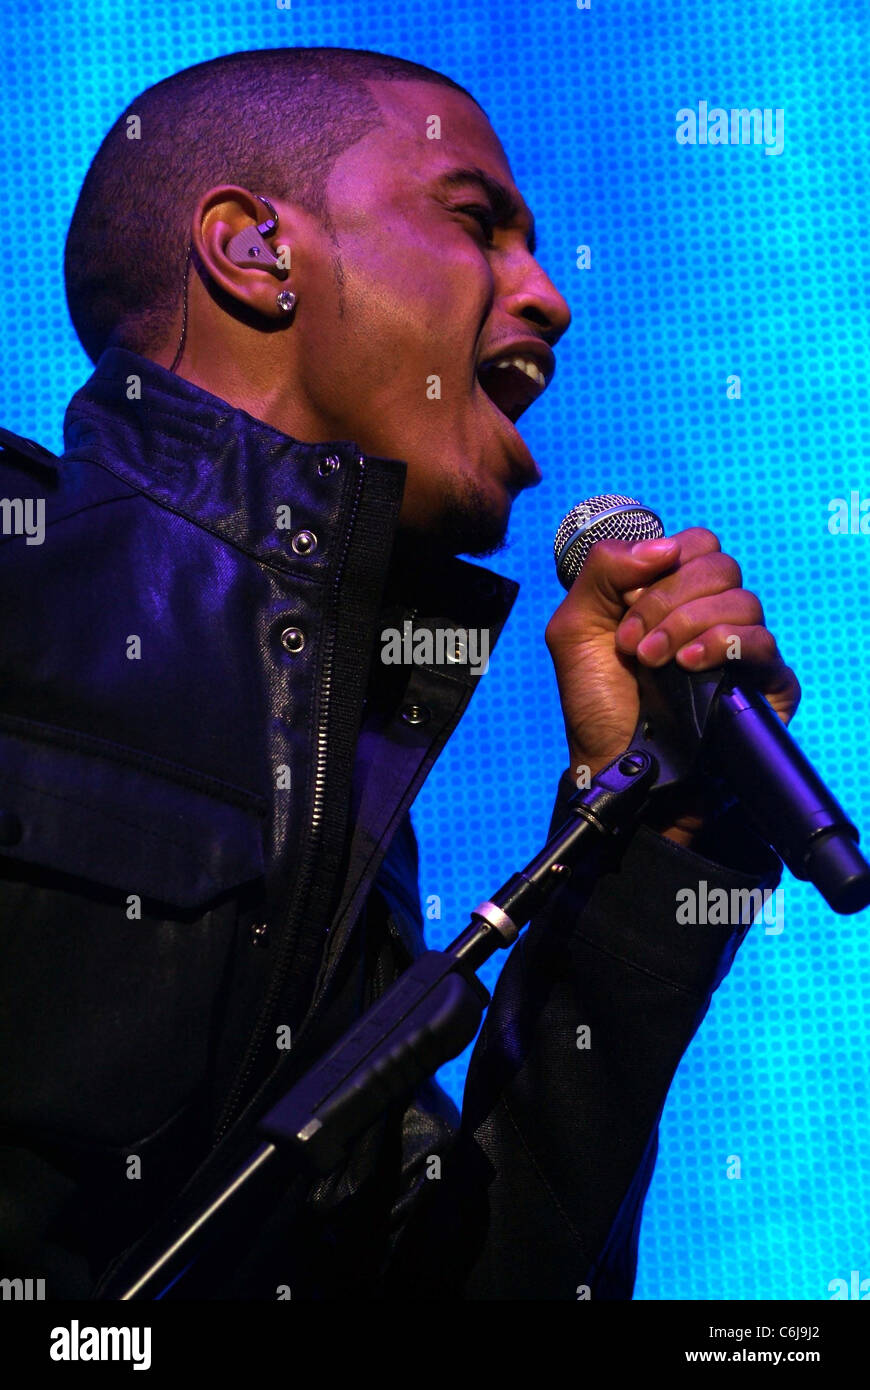 Blueprint stage stock photos blueprint stage stock images alamy singer trey songz performs on stage during the opening night of jay zs blueprint 3 malvernweather Image collections